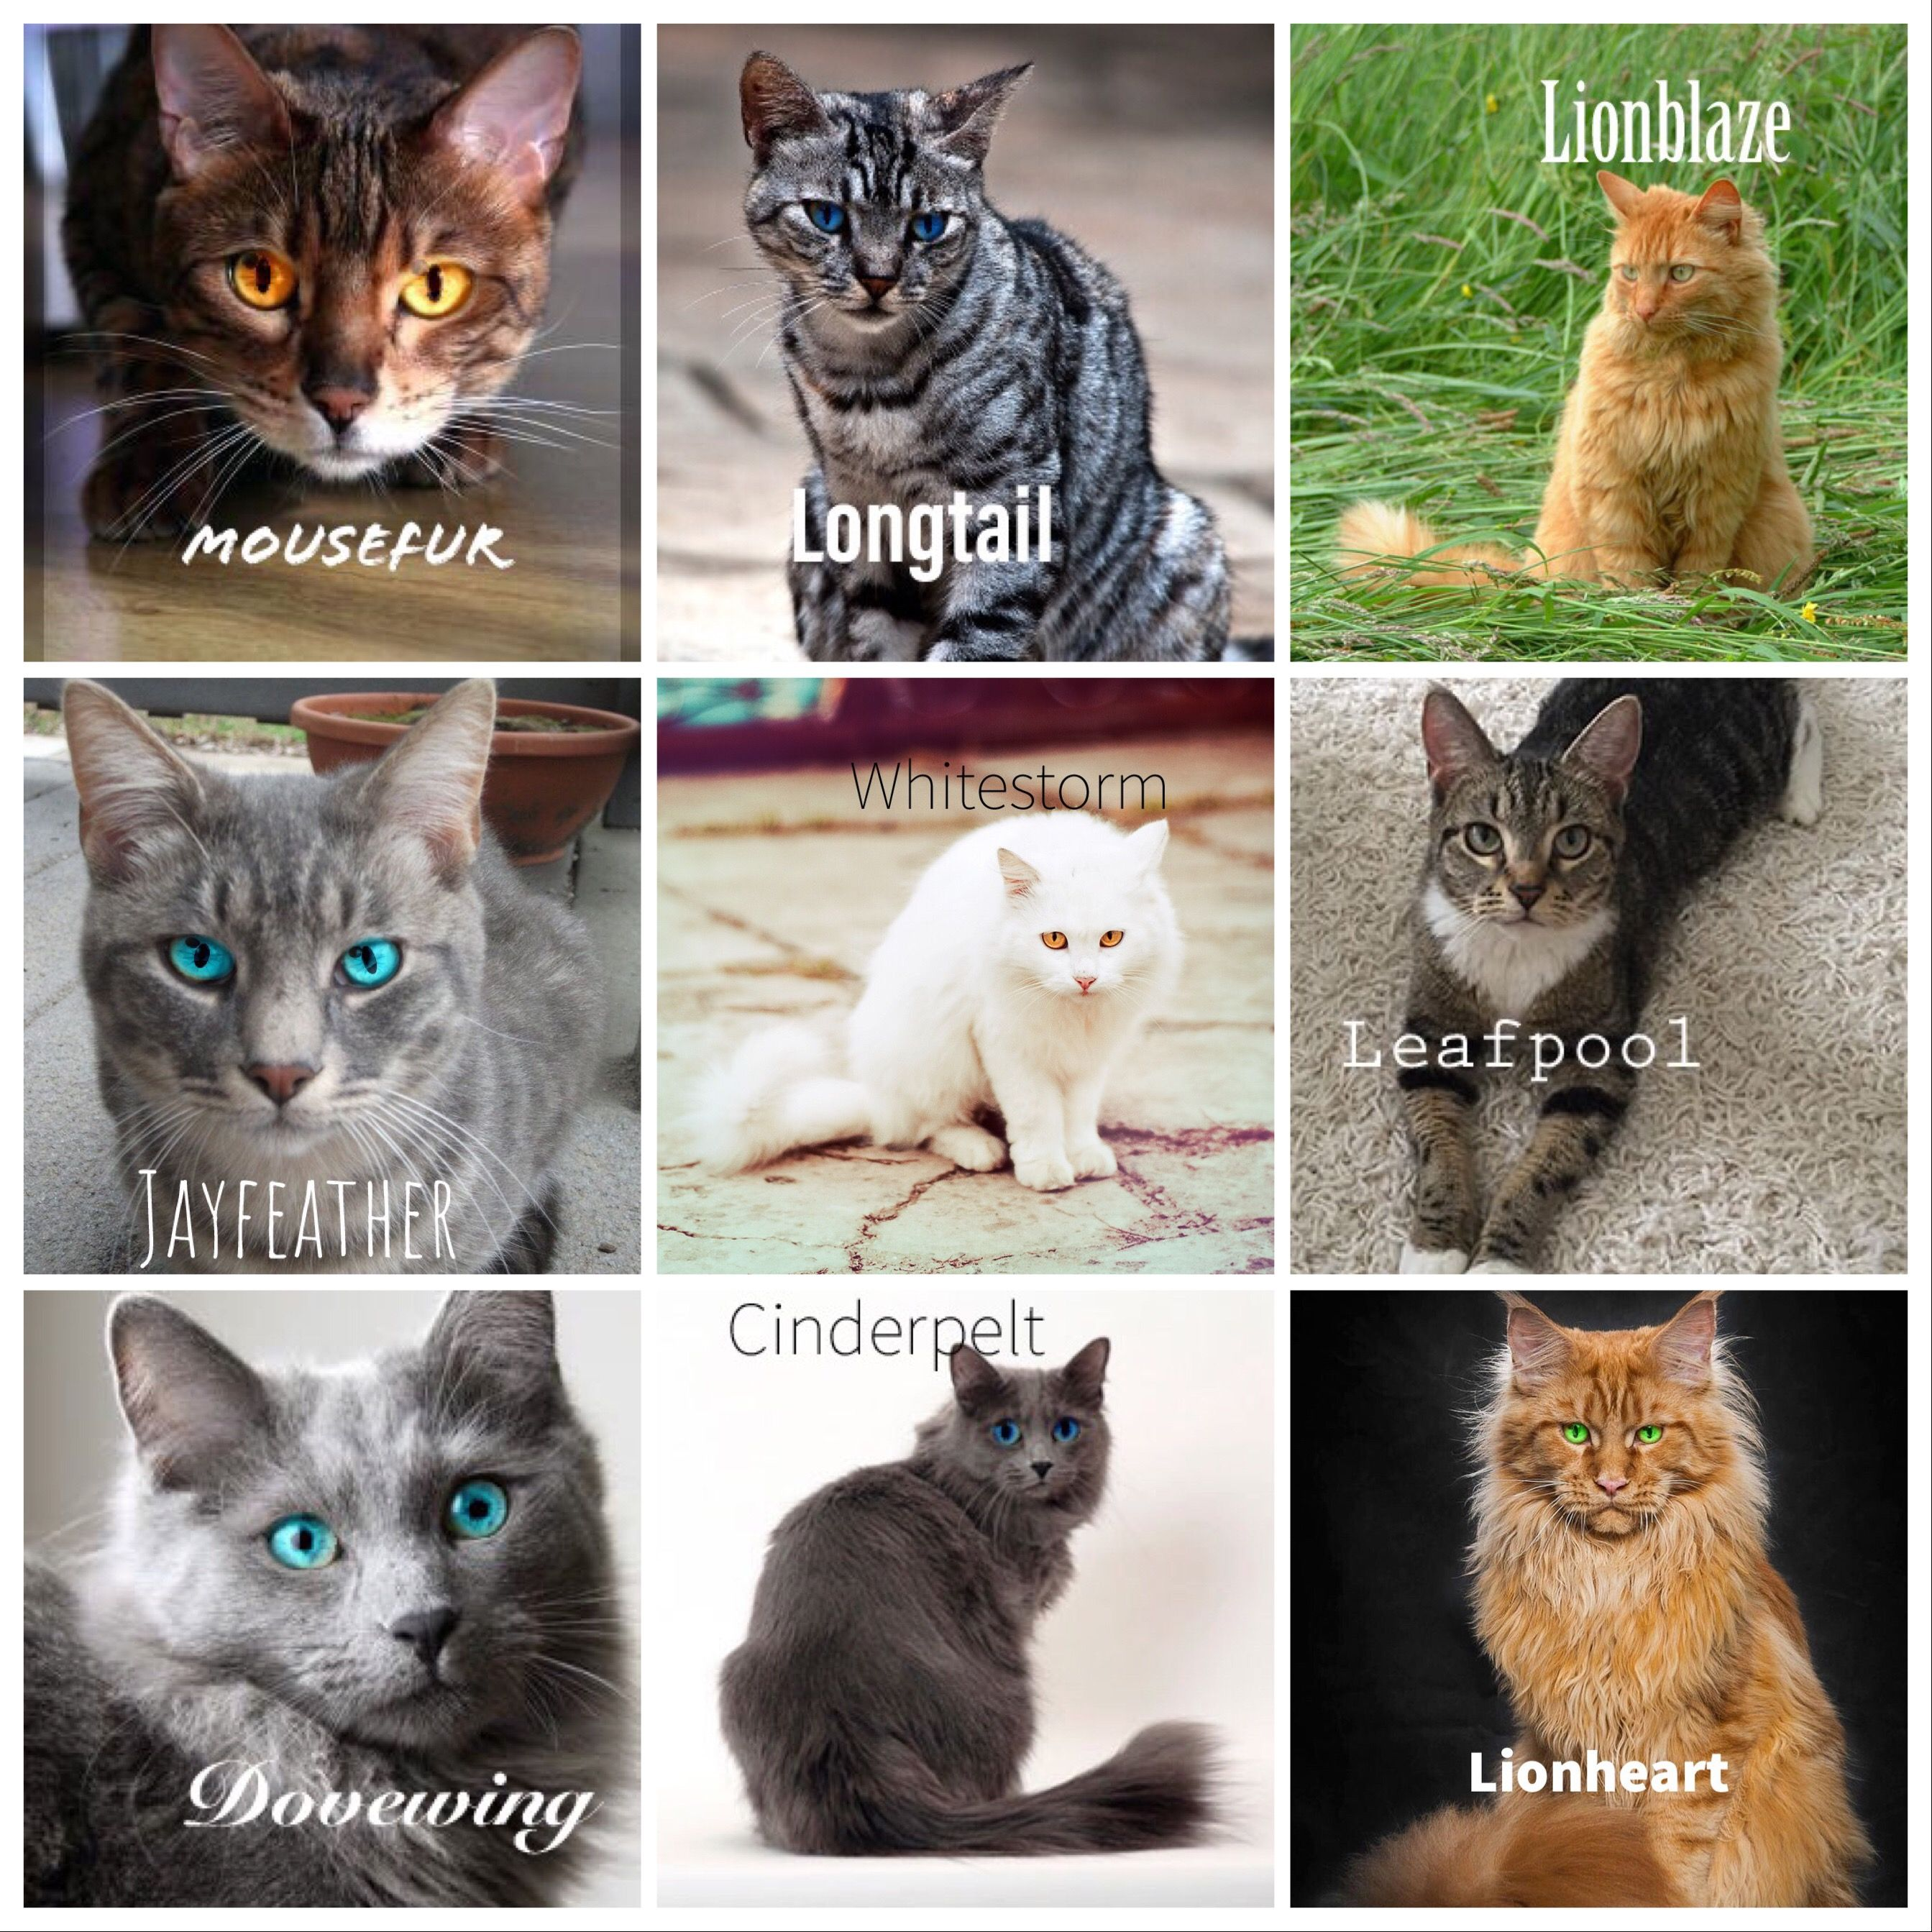 Pin By Amaili Miller On Warrior Cats Warrior Cat Memes Warrior Cats Warrior Cats Art